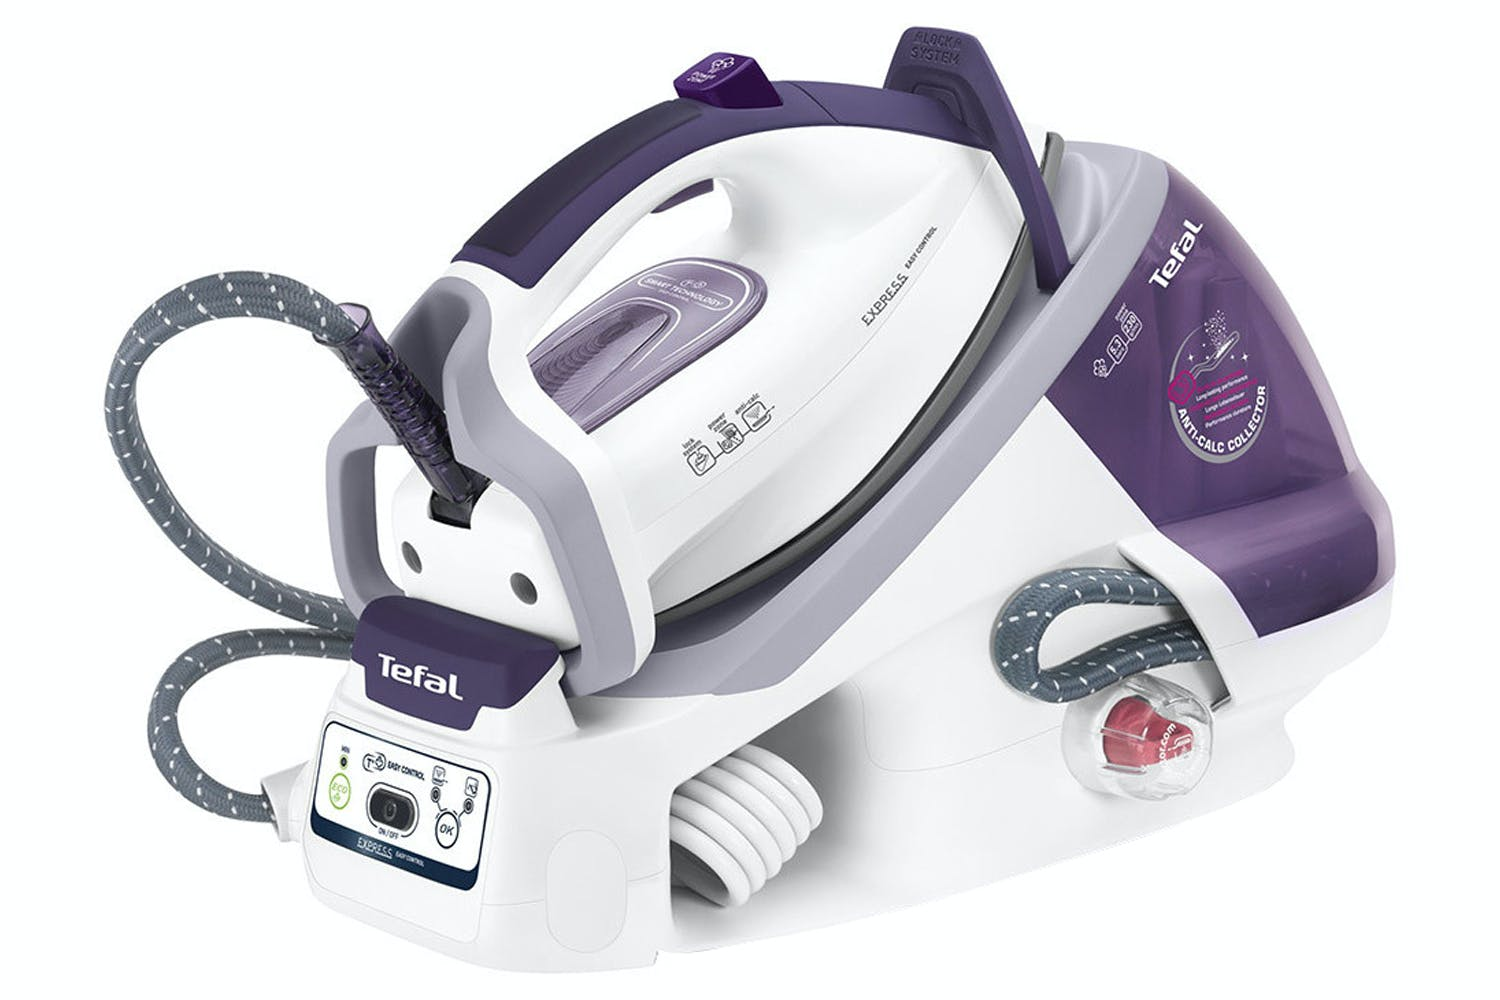 Tefal Steam Generator Iron | GV7555G0